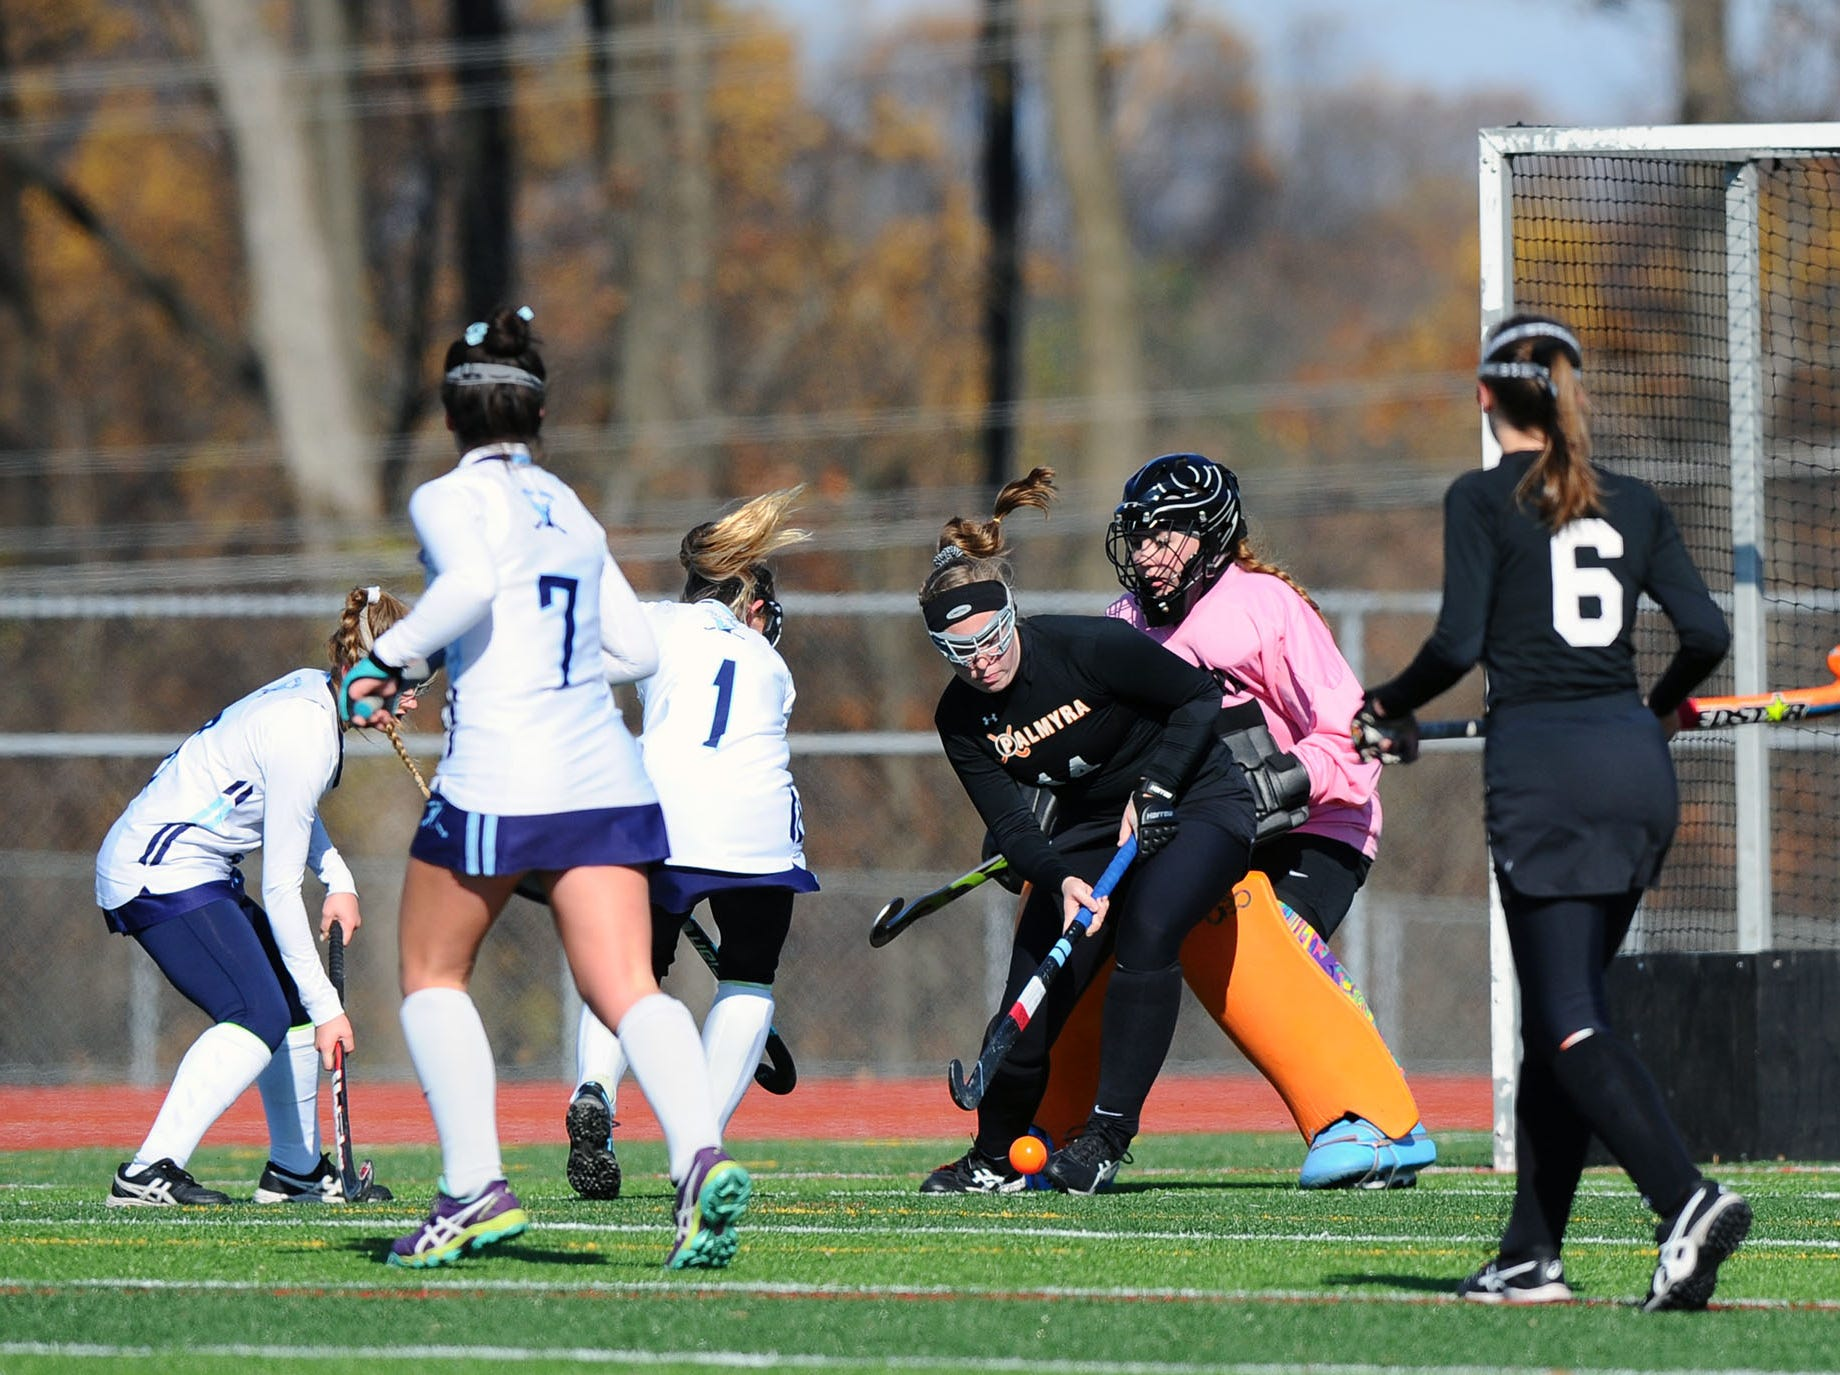 Palmyra's Emily Risser (14) clears the ball in front of her (GK) Ashton Byrd during the first half of play.